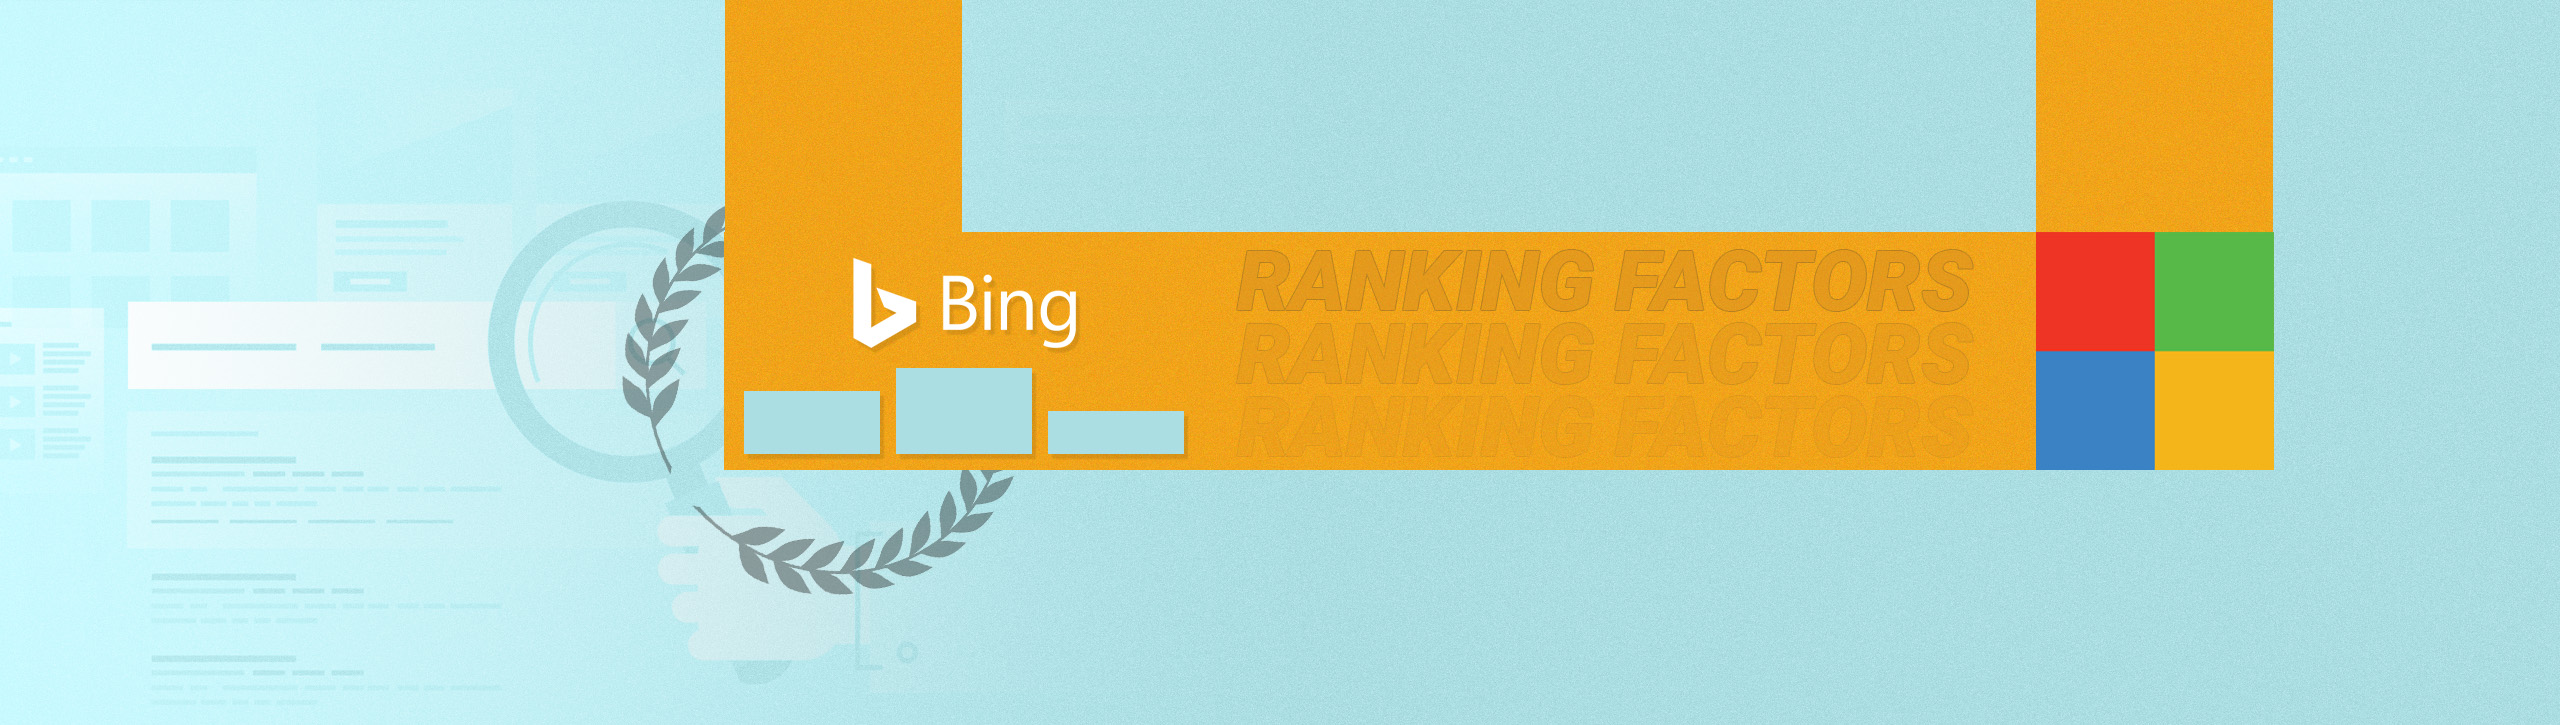 Bing Ranking Factors: What Can We Learn?